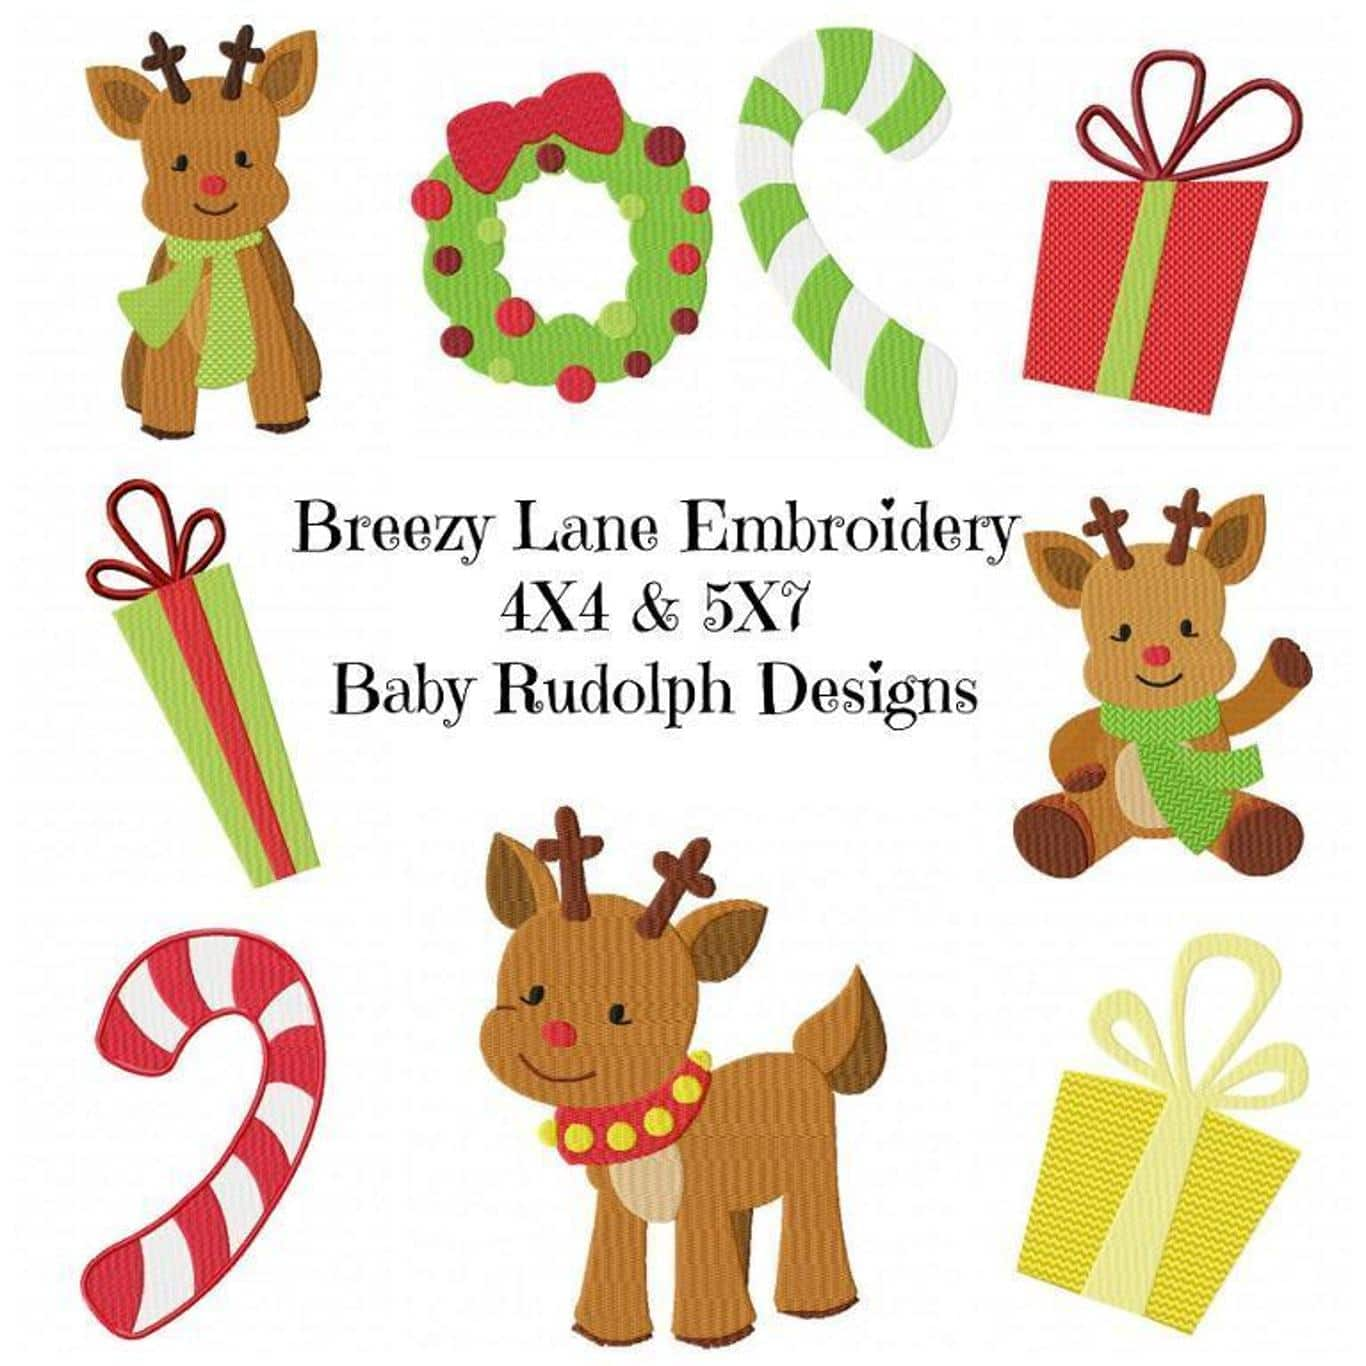 rudolphchristmasembroiderydesignset by Brezzy Lane Embroidery The Most Special Free and Paid Rudolph Christmas Embroidery Designs